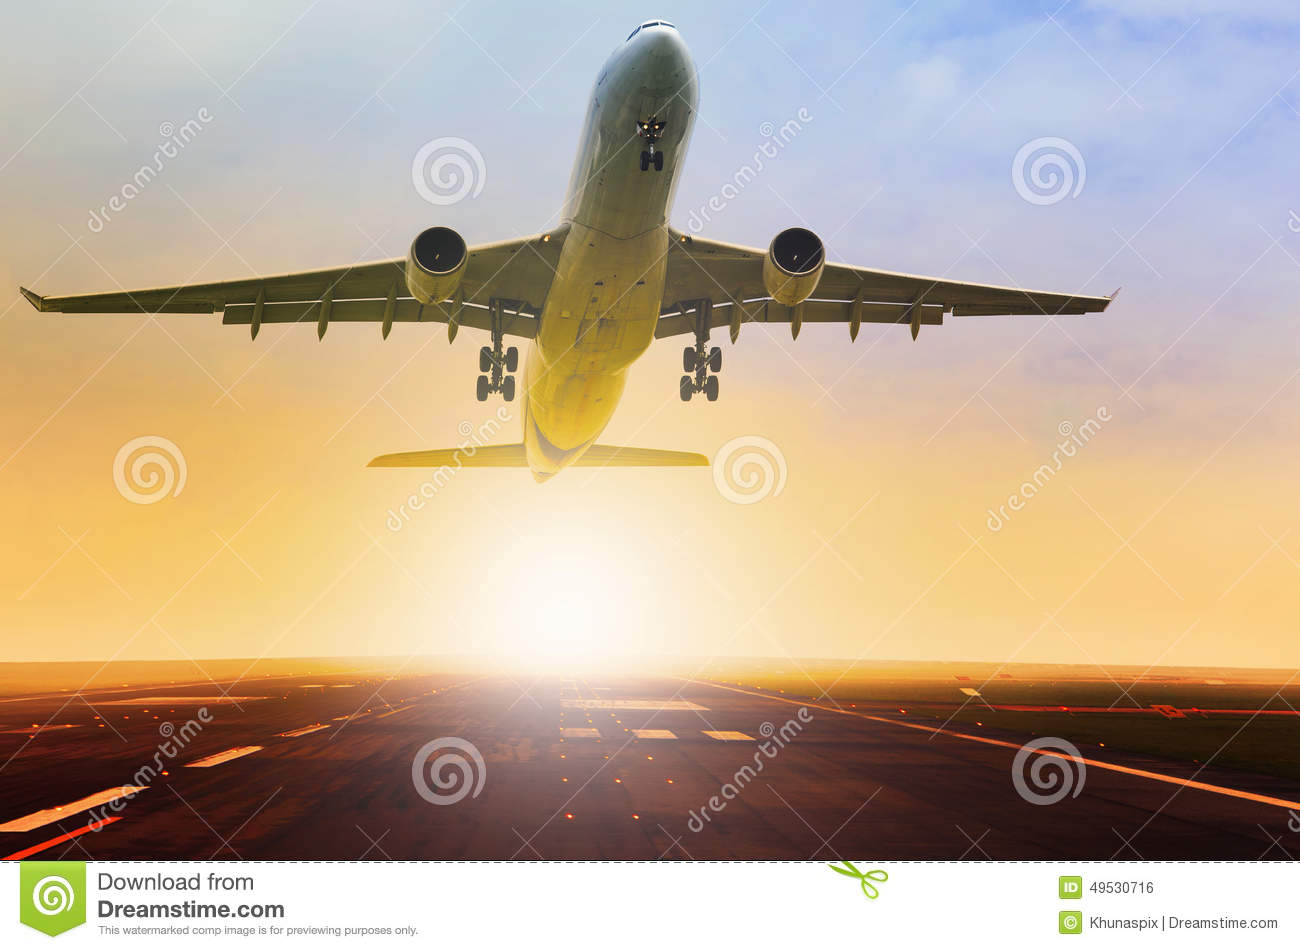 Passenger jet plane take off fron airport runway with beautiful